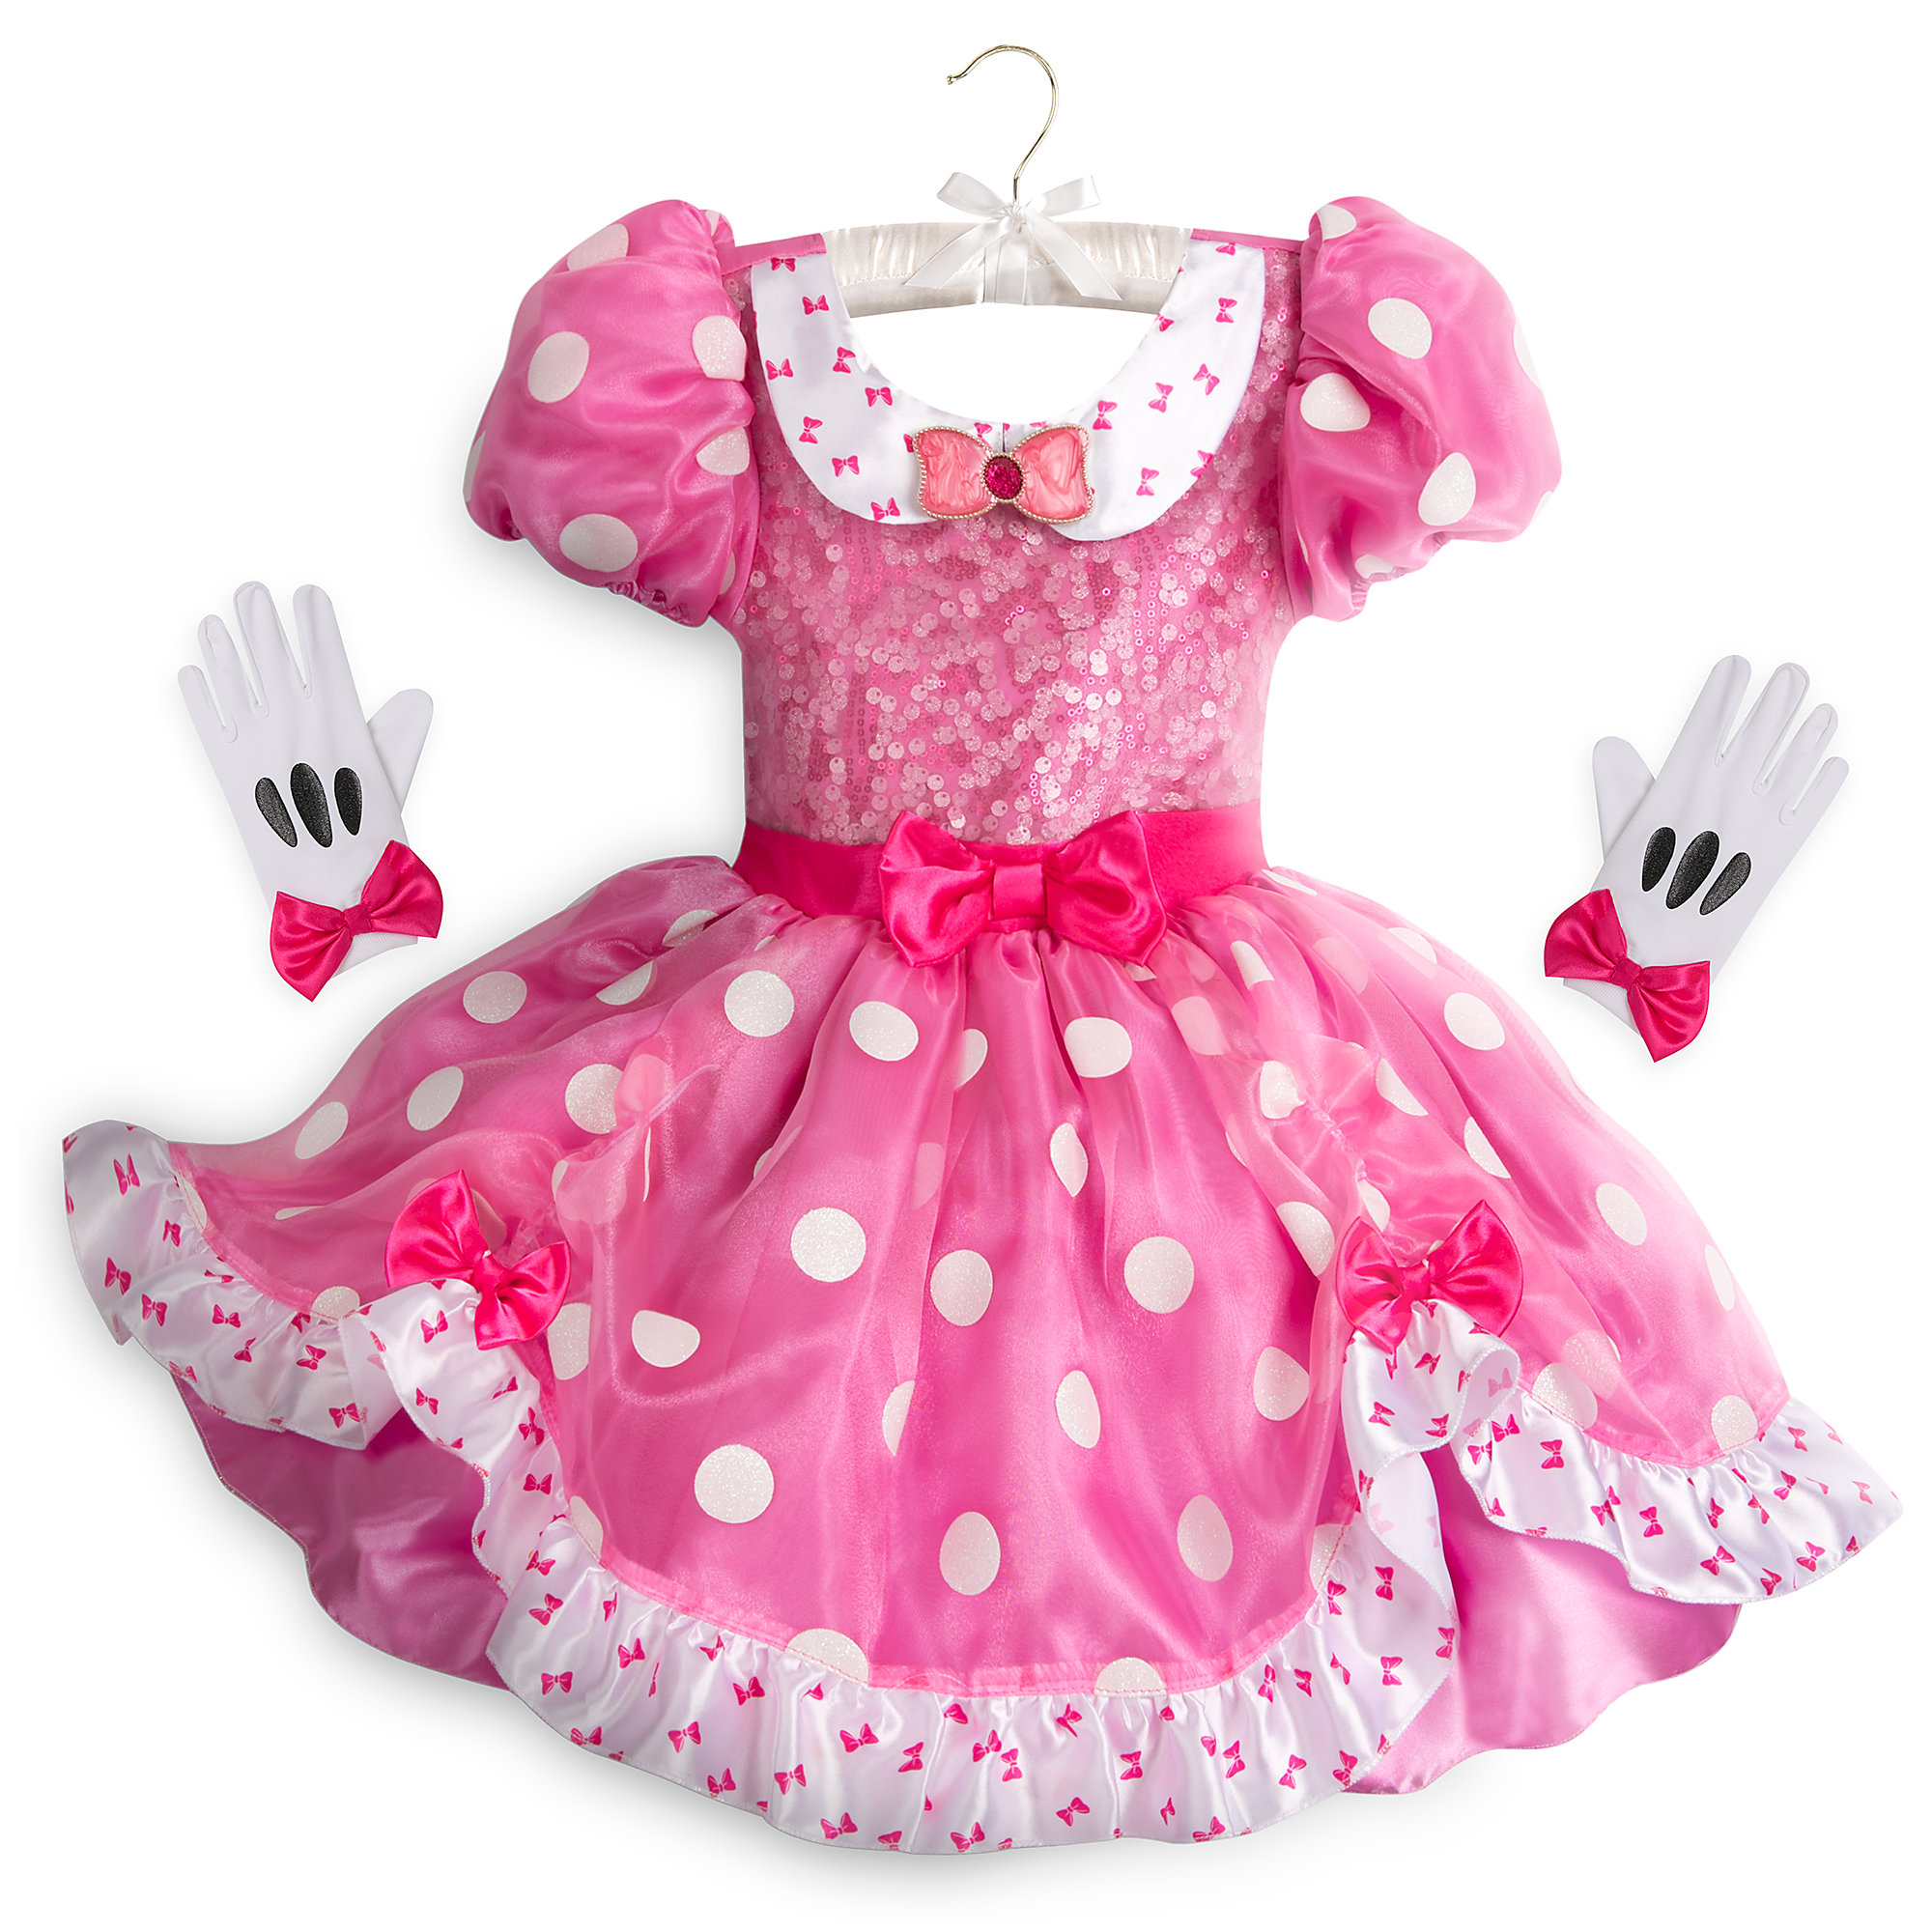 Thumbnail Image of Minnie Mouse Costume for Kids - Pink # 1  sc 1 st  shopDisney & Minnie Mouse Costume for Kids - Pink | shopDisney